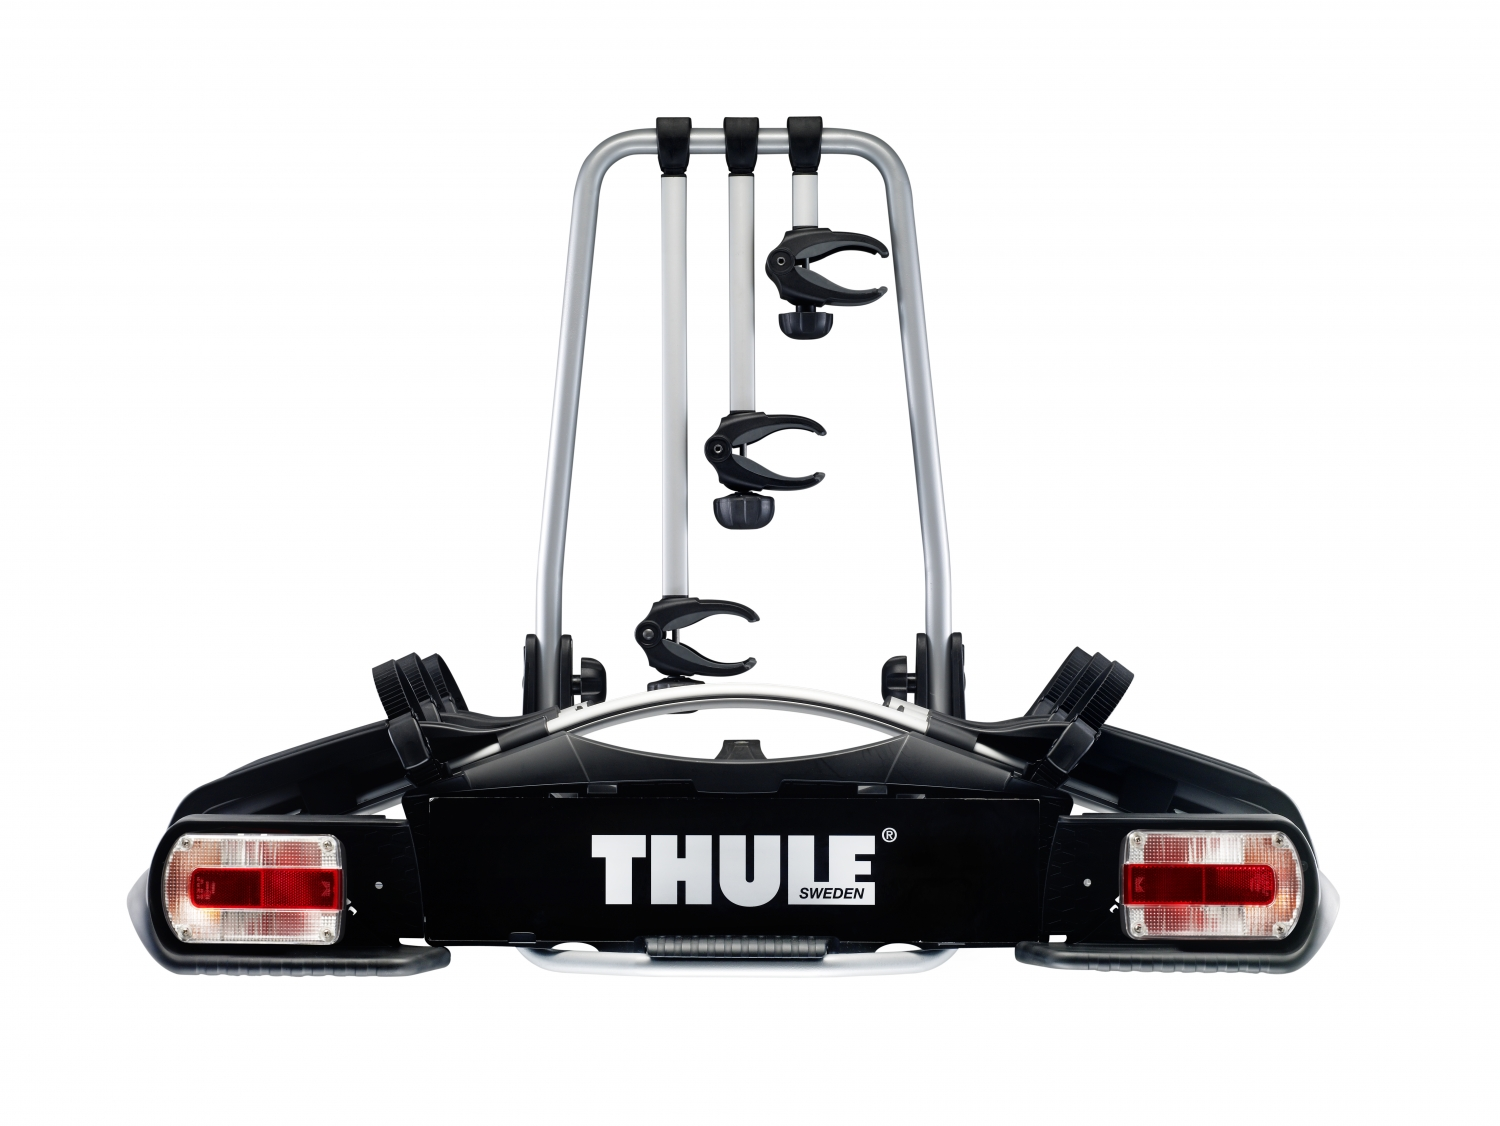 euroride 943 thule cykelholder til 3 cykler bag p bilen. Black Bedroom Furniture Sets. Home Design Ideas